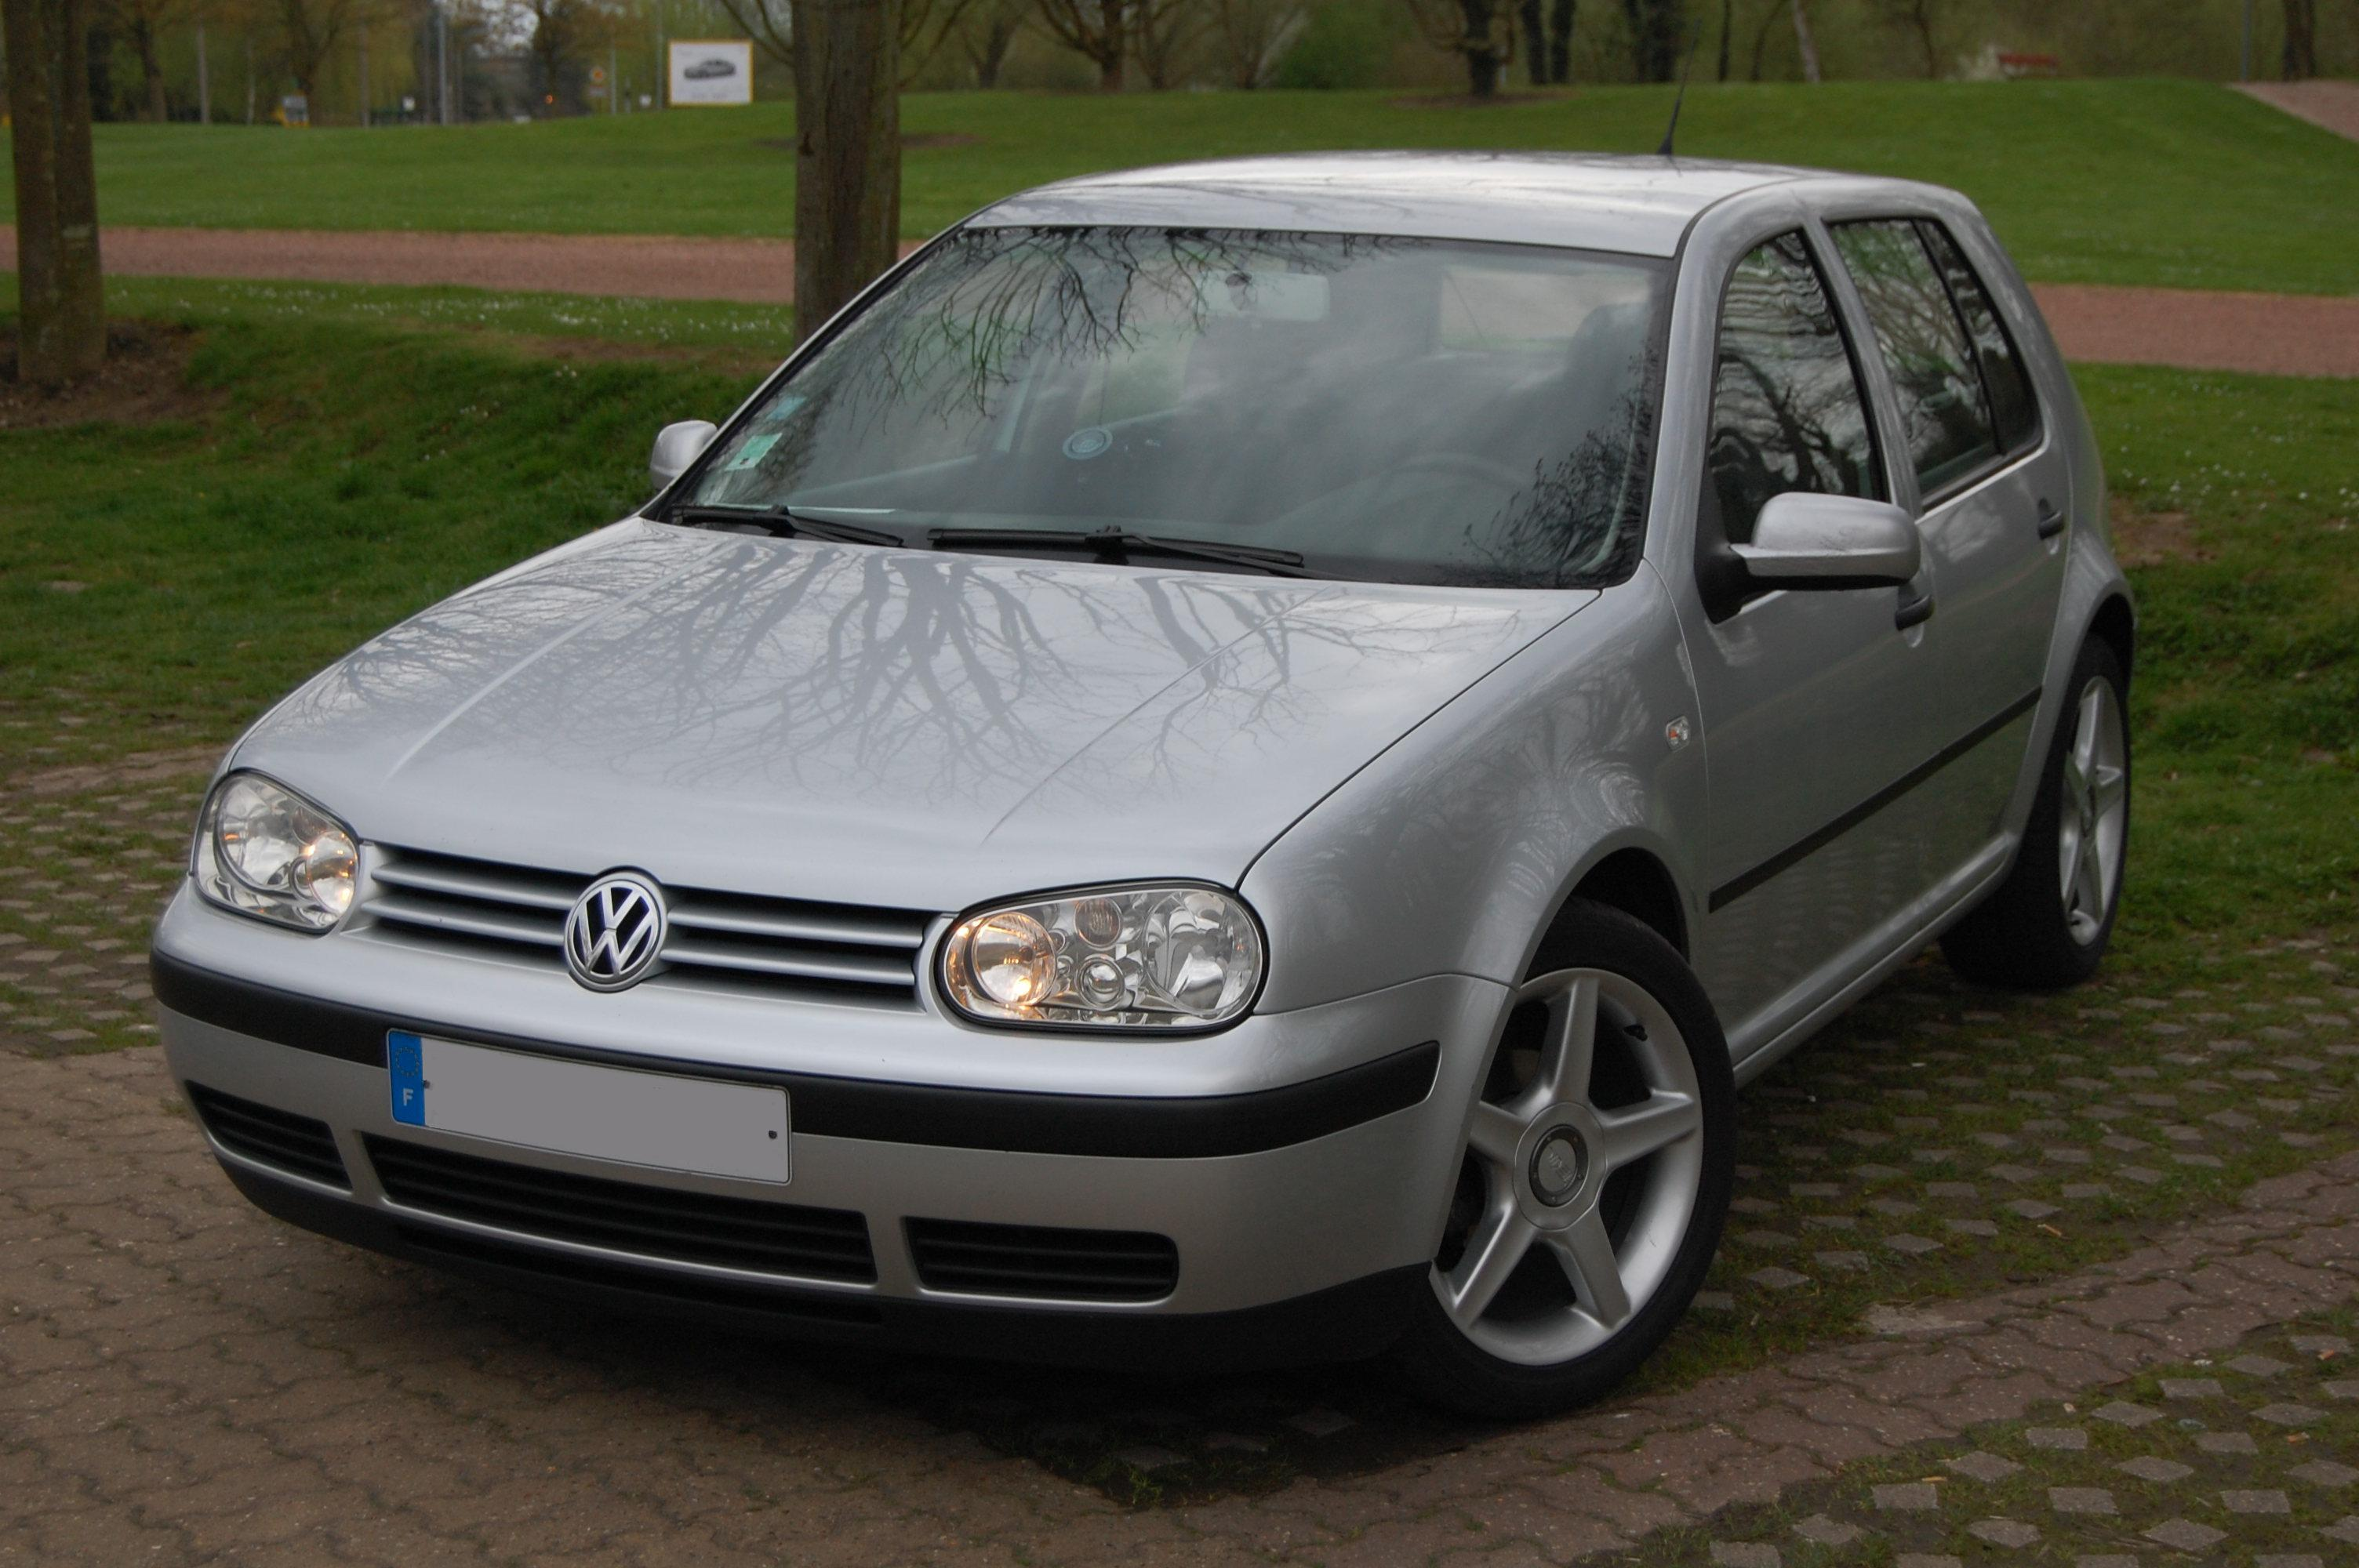 golf iv 1 9 sdi edition fleg62 garage des golf iv sdi forum volkswagen golf iv. Black Bedroom Furniture Sets. Home Design Ideas